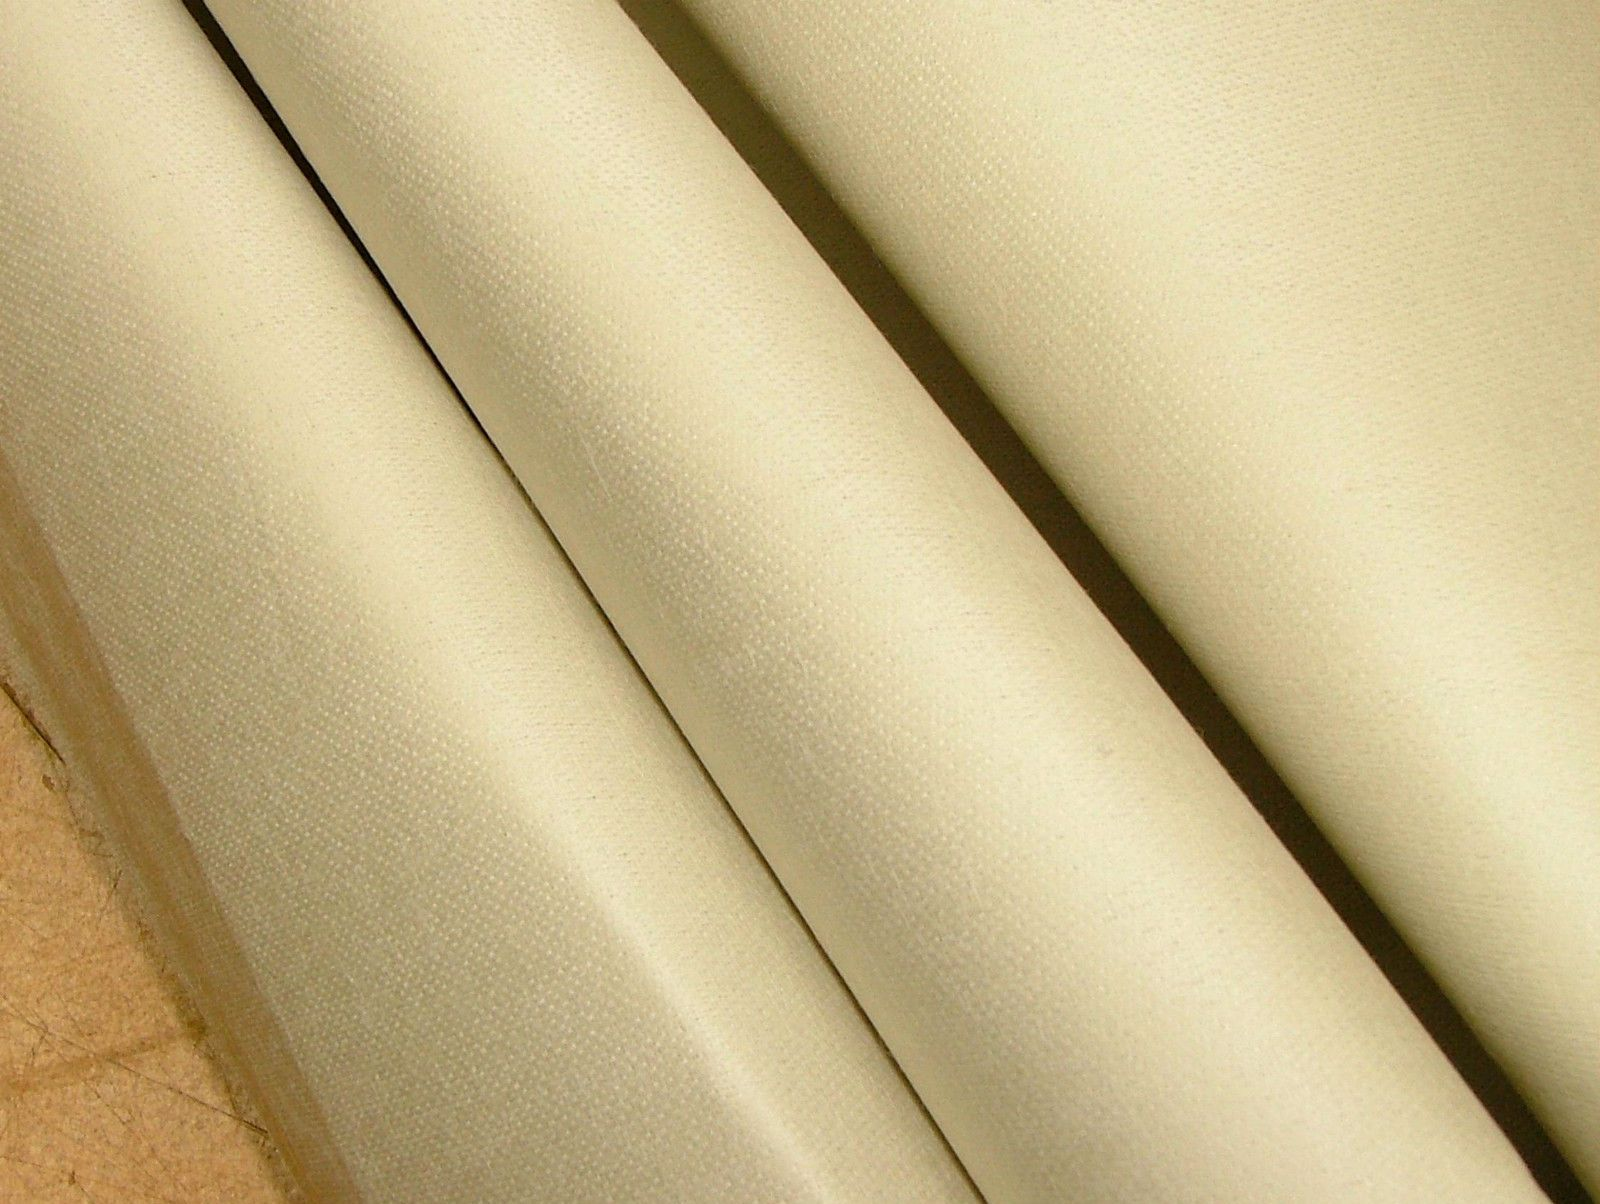 Elegant Laura Ashley 100% Cotton Sateen Natural Stone Premium Curtain Lining Fabric